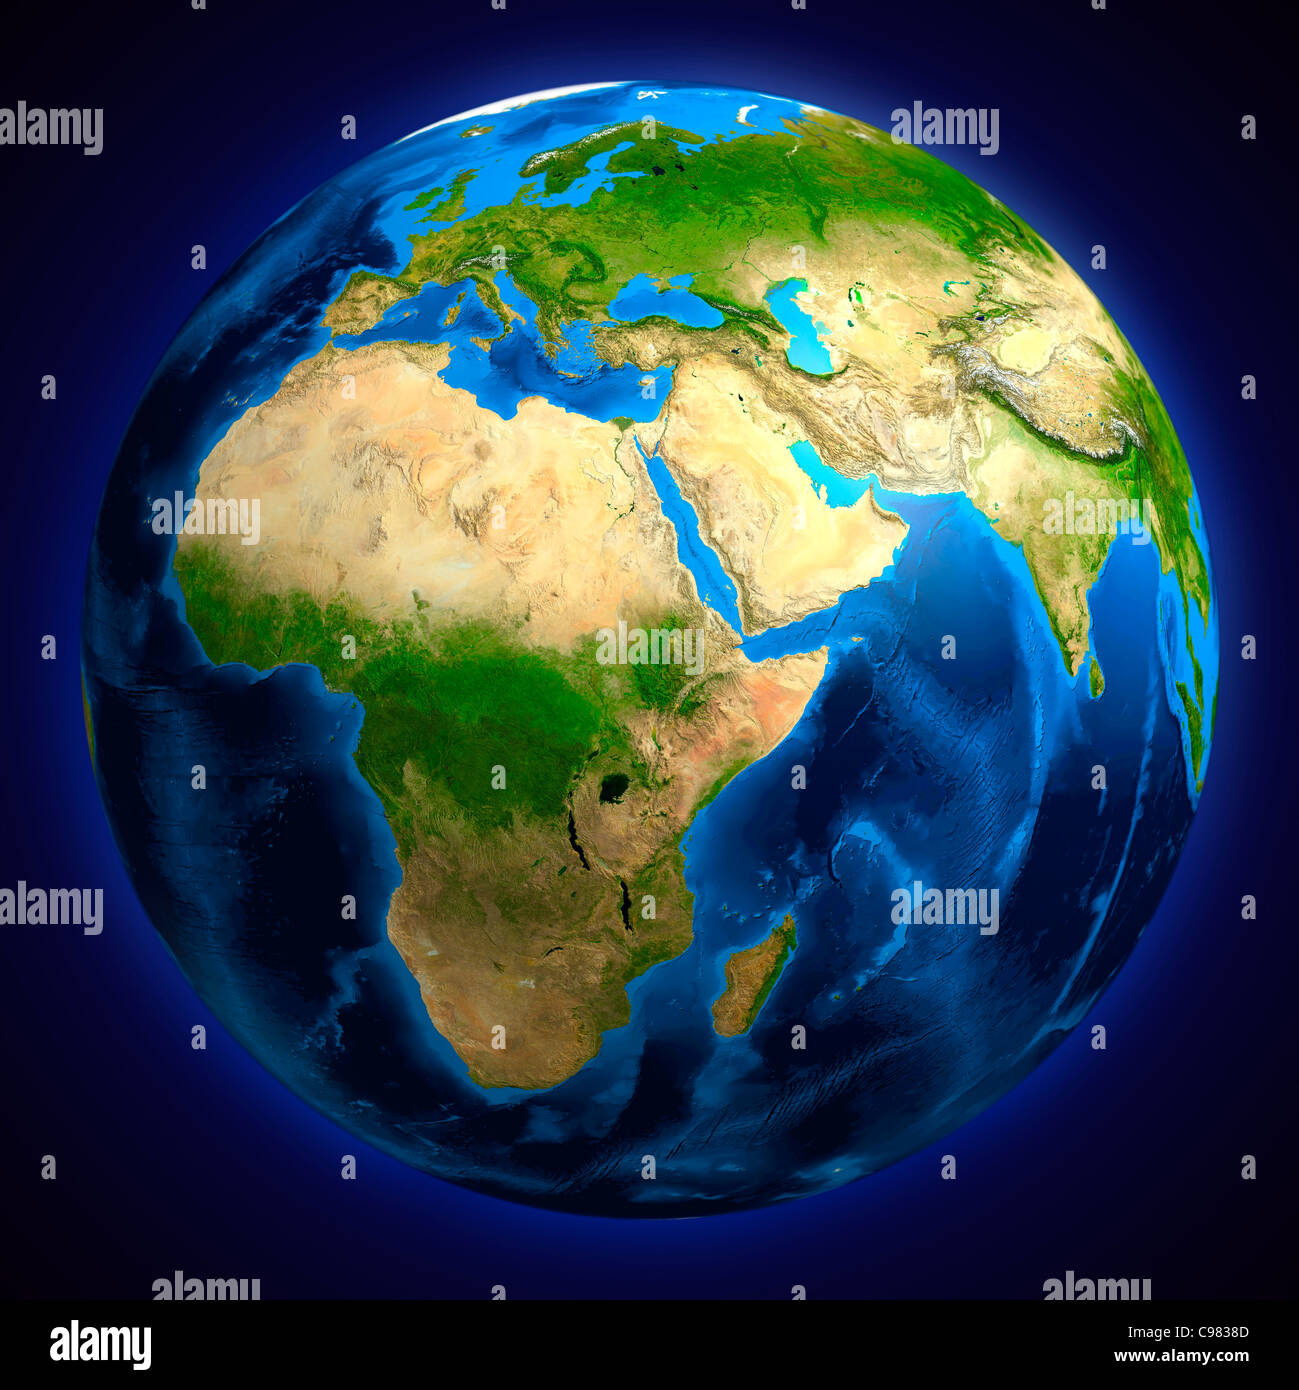 View of the Earth globe from space showing African, European and Asian continents. Isolated on dark blue background. - Stock Image